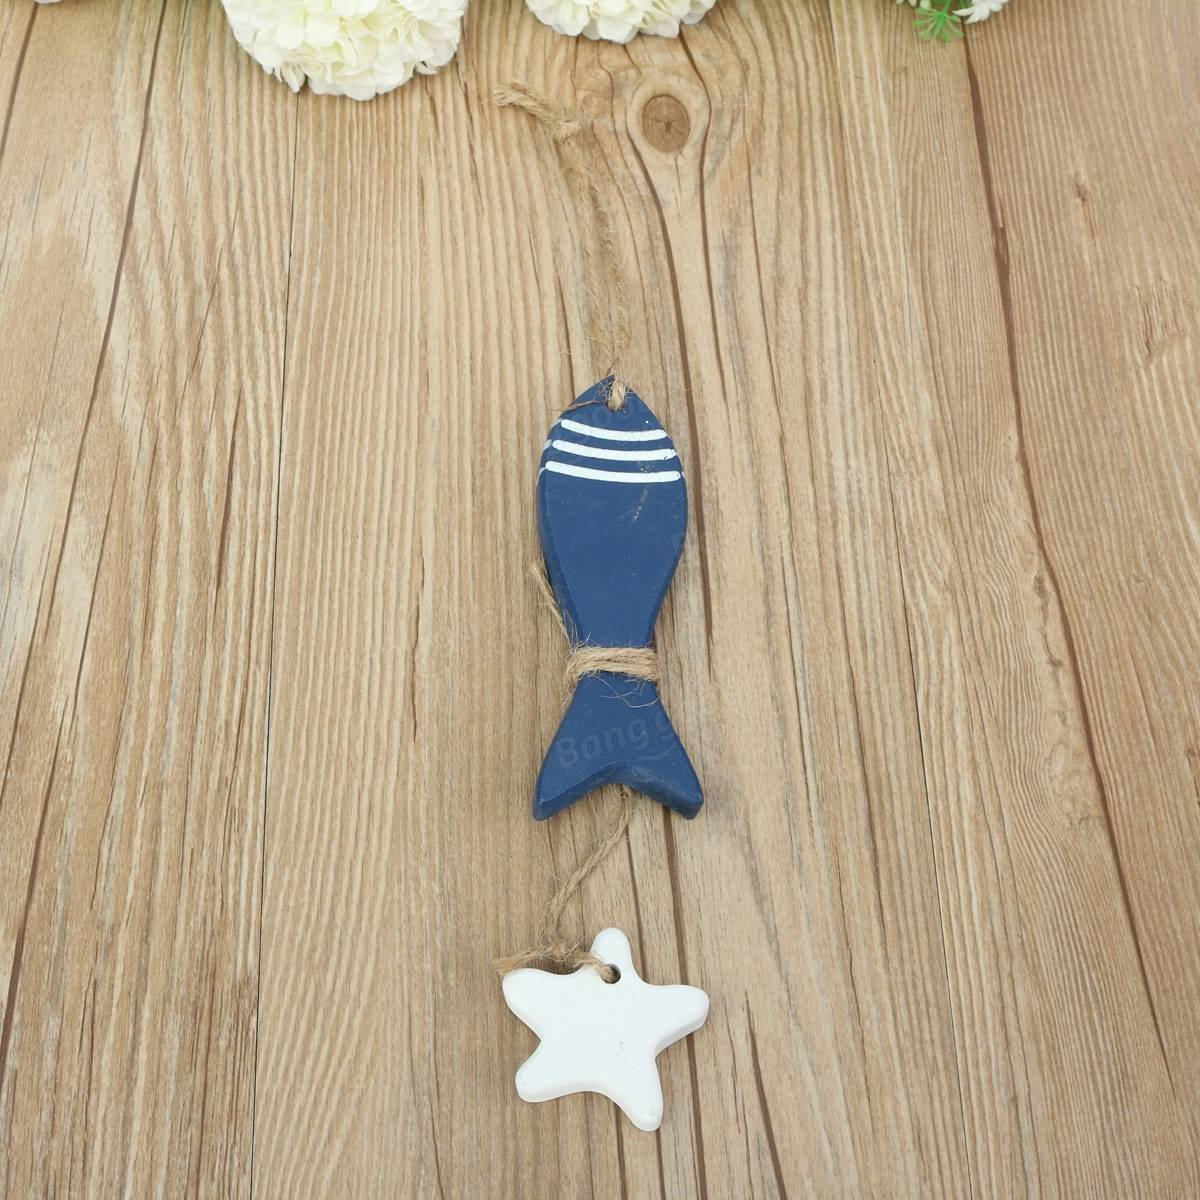 Bazaar Mediterranean Style Wooden Fish Star Dolphin Hanging Nautical Decor Boat Ship Beach Wall Ornament Big Bazaar EXPSFN014806